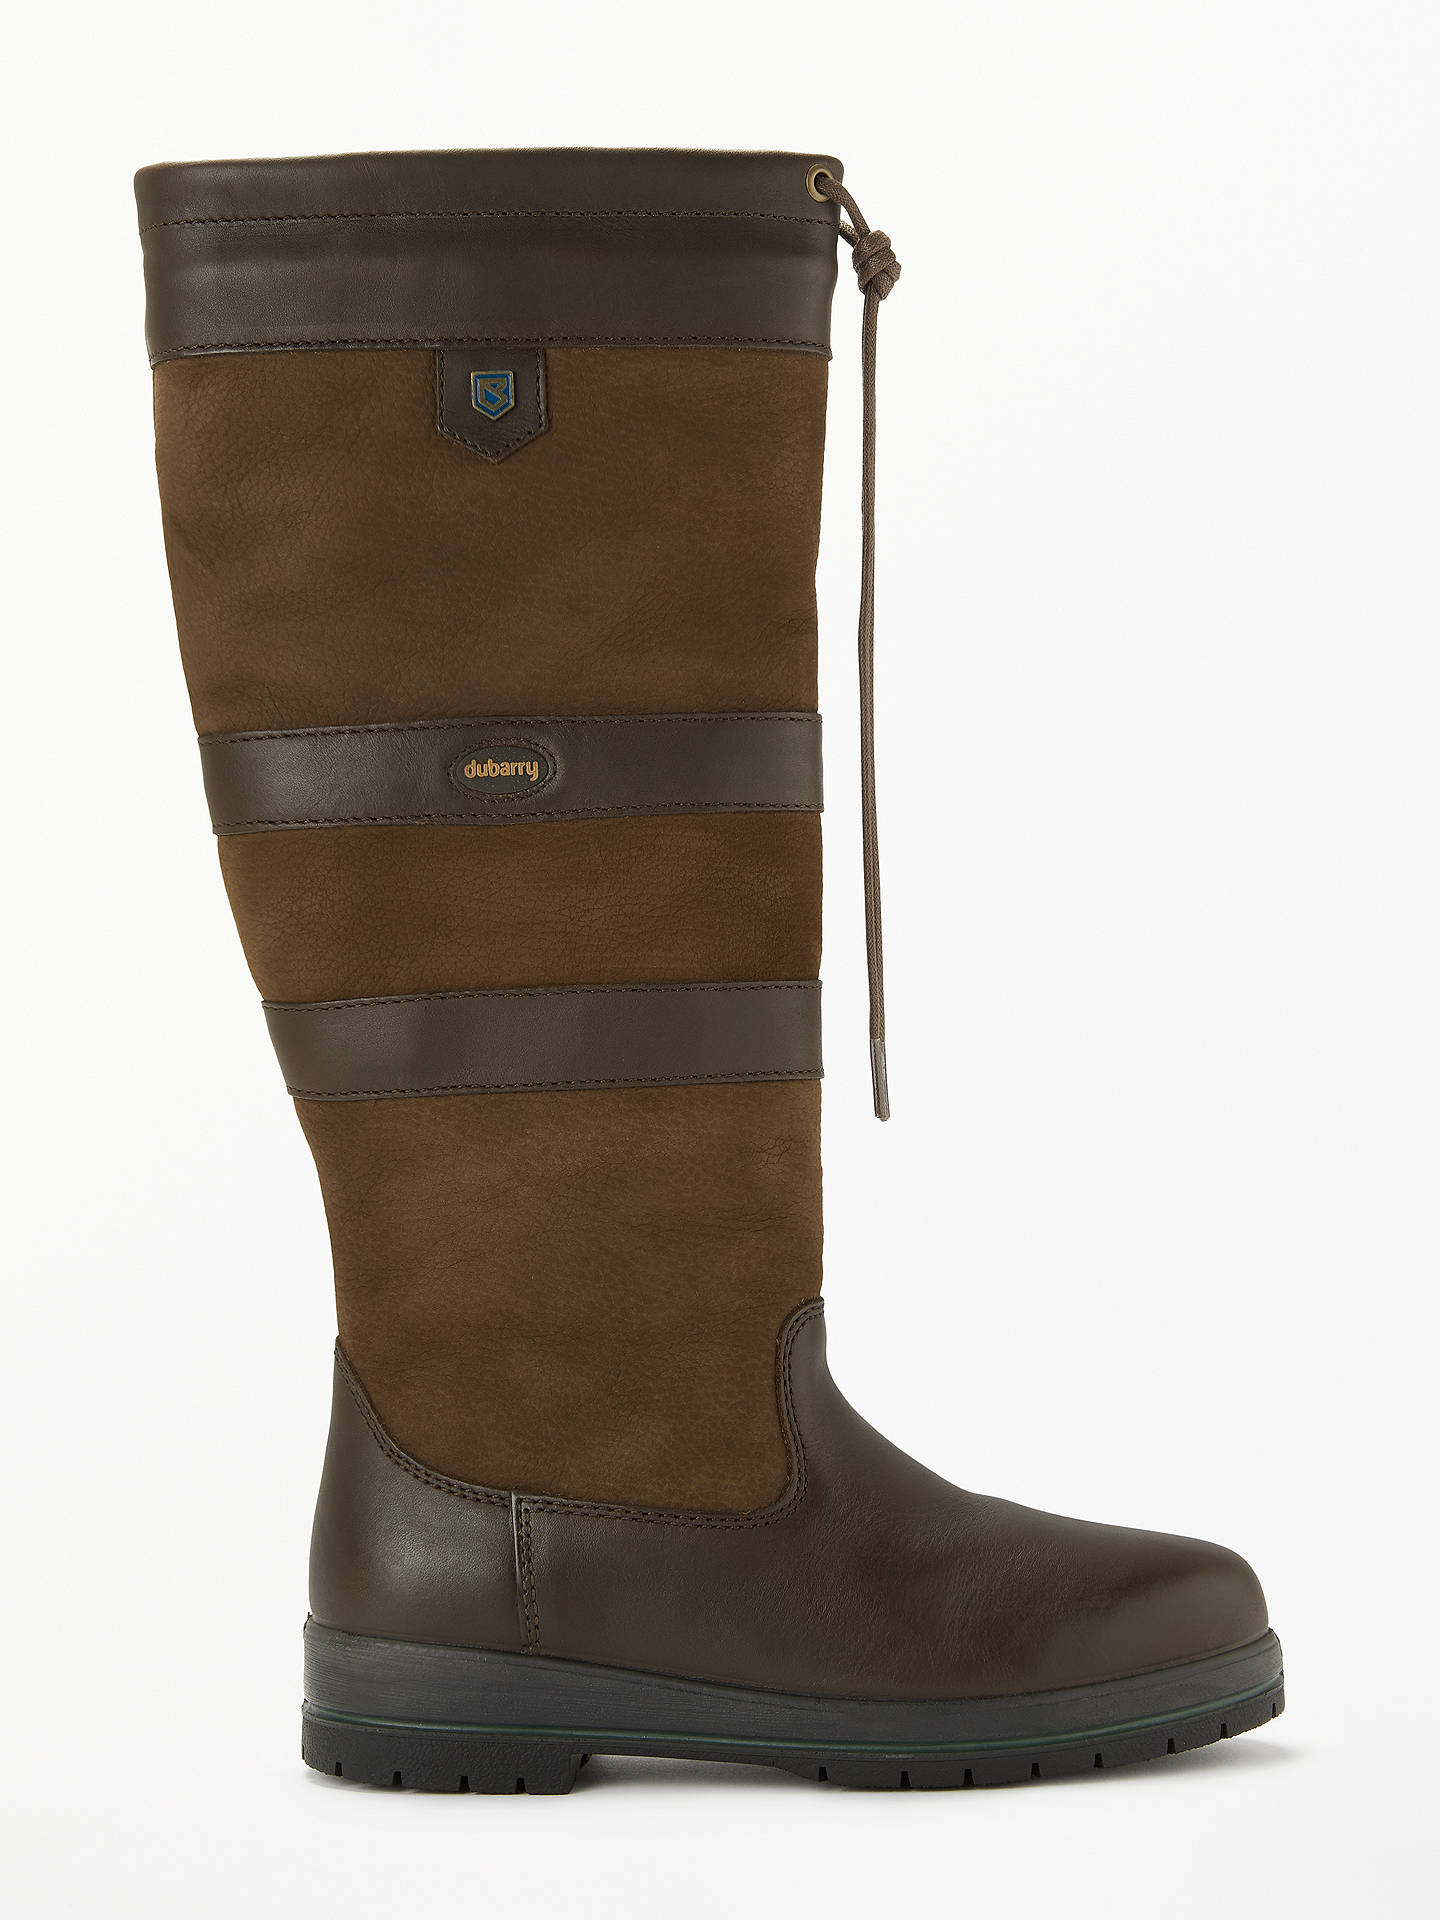 BuyDubarry Galway Gortex Waterproof Knee High Boots 52956cb740ca